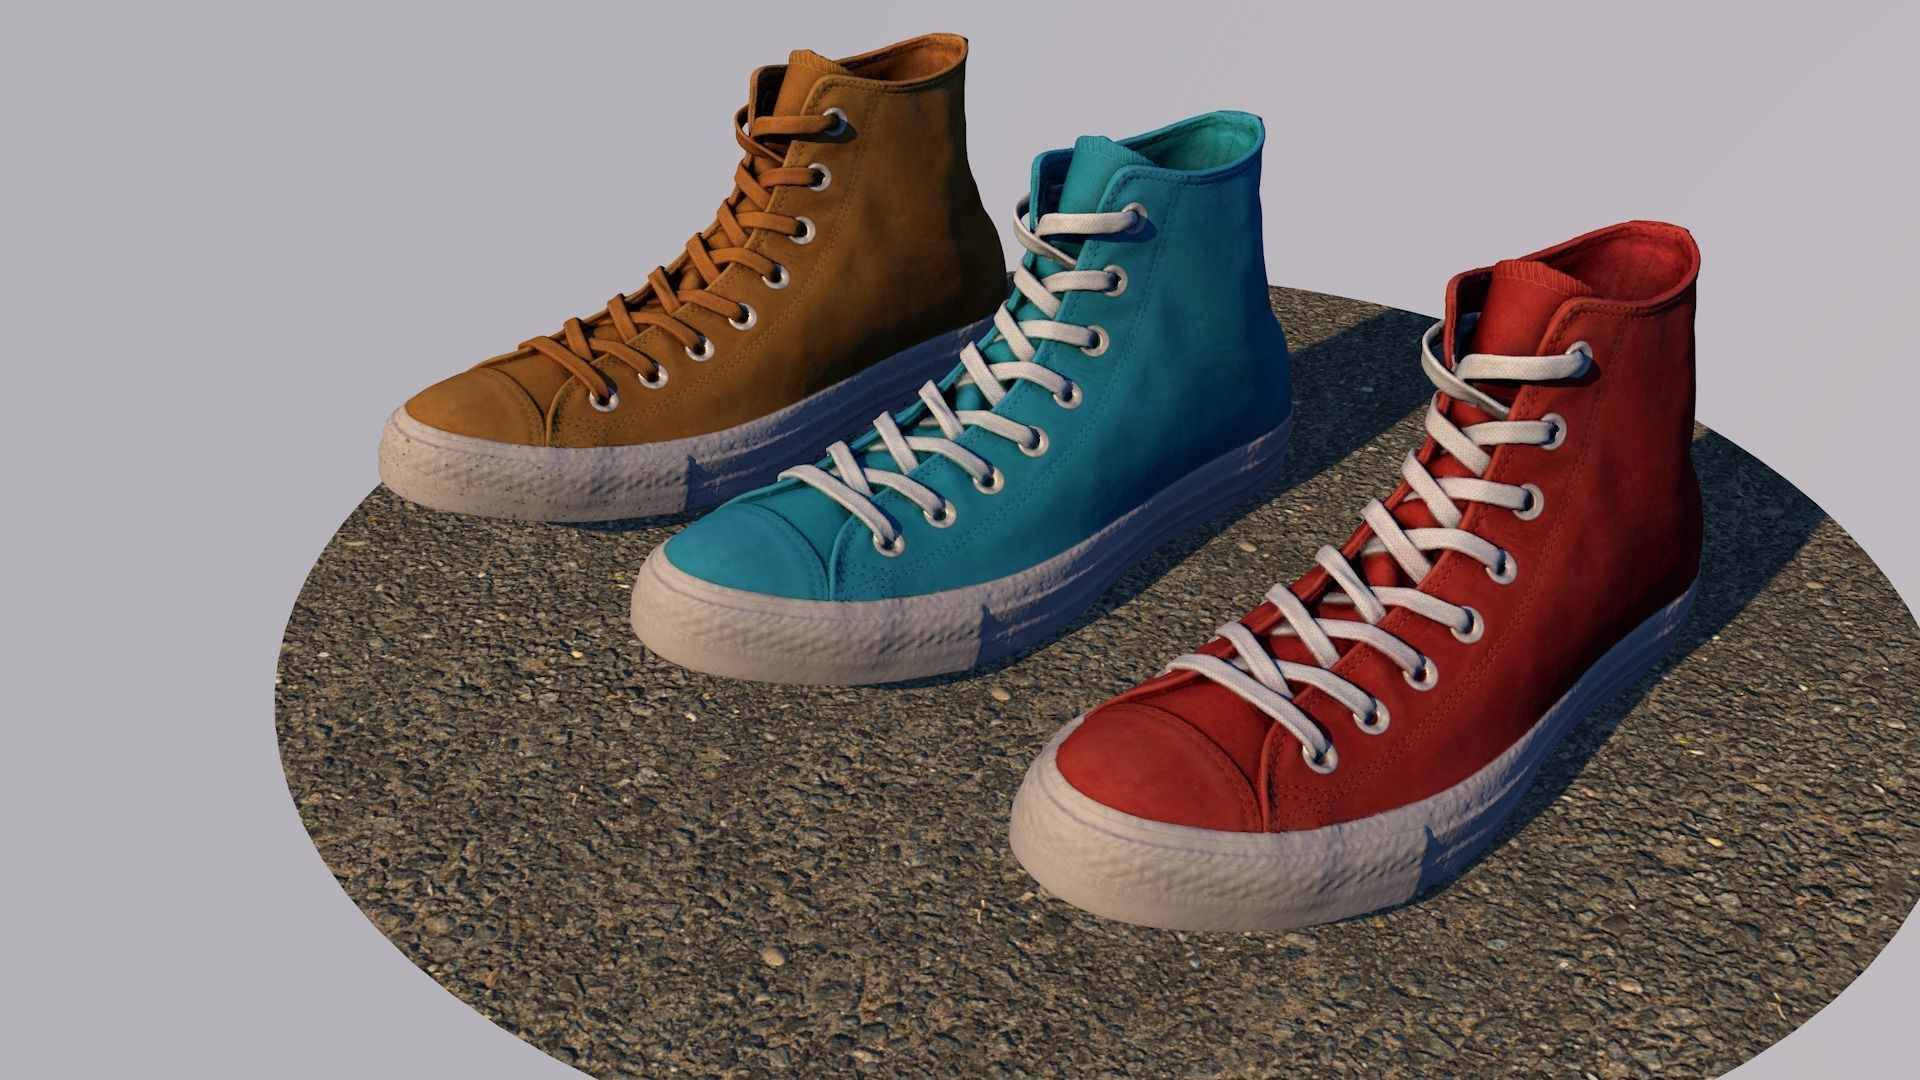 f2154818f595 ... converse all star multi-color customizable psd included 3d model  low-poly max fbx ...